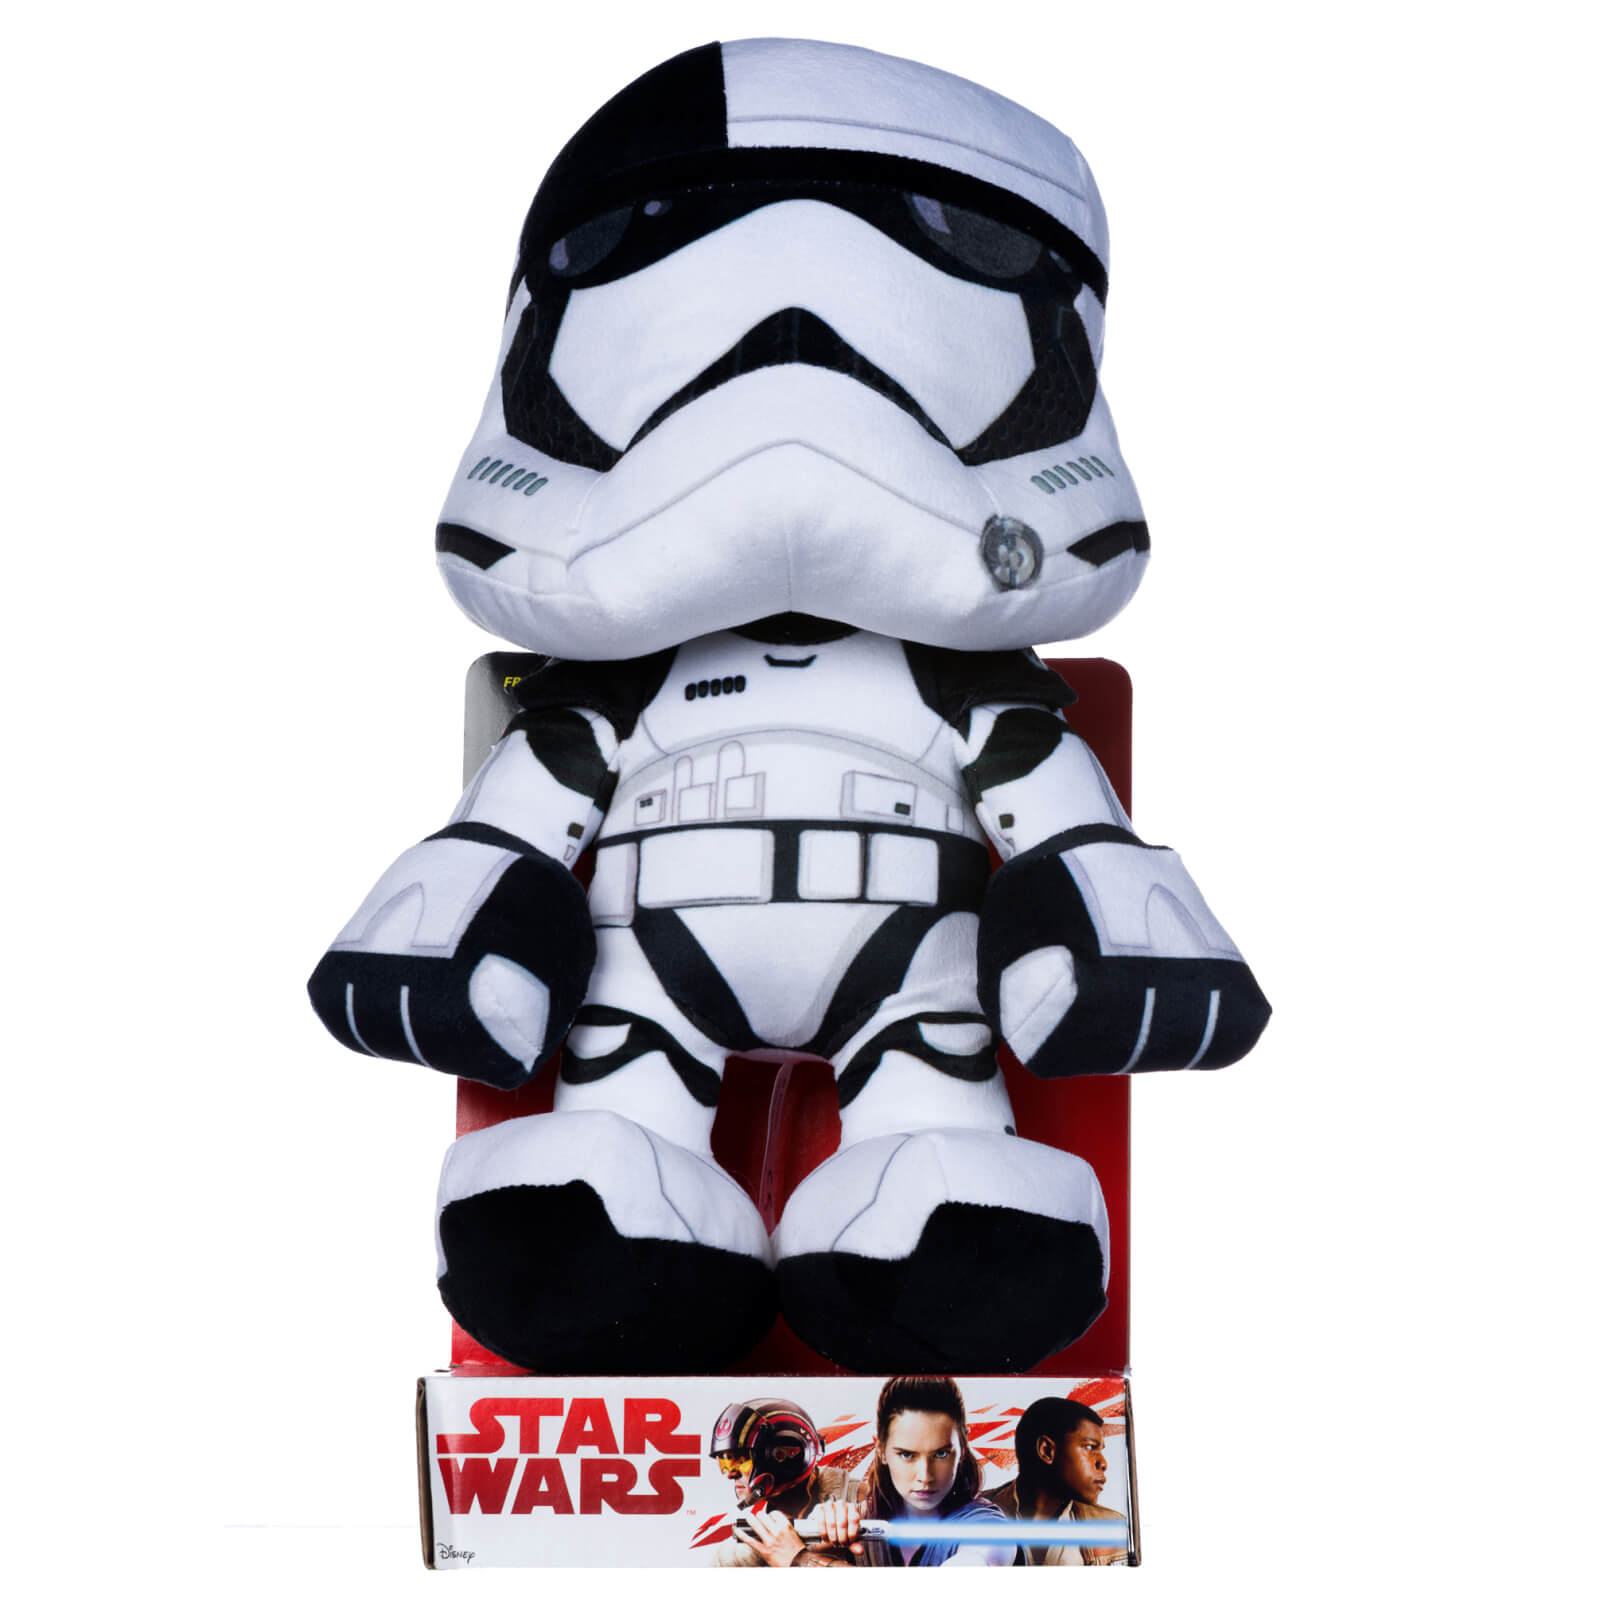 "Star Wars Episode 8 - The Last Jedi - 10"""" StormTrooper Executioner Plush"